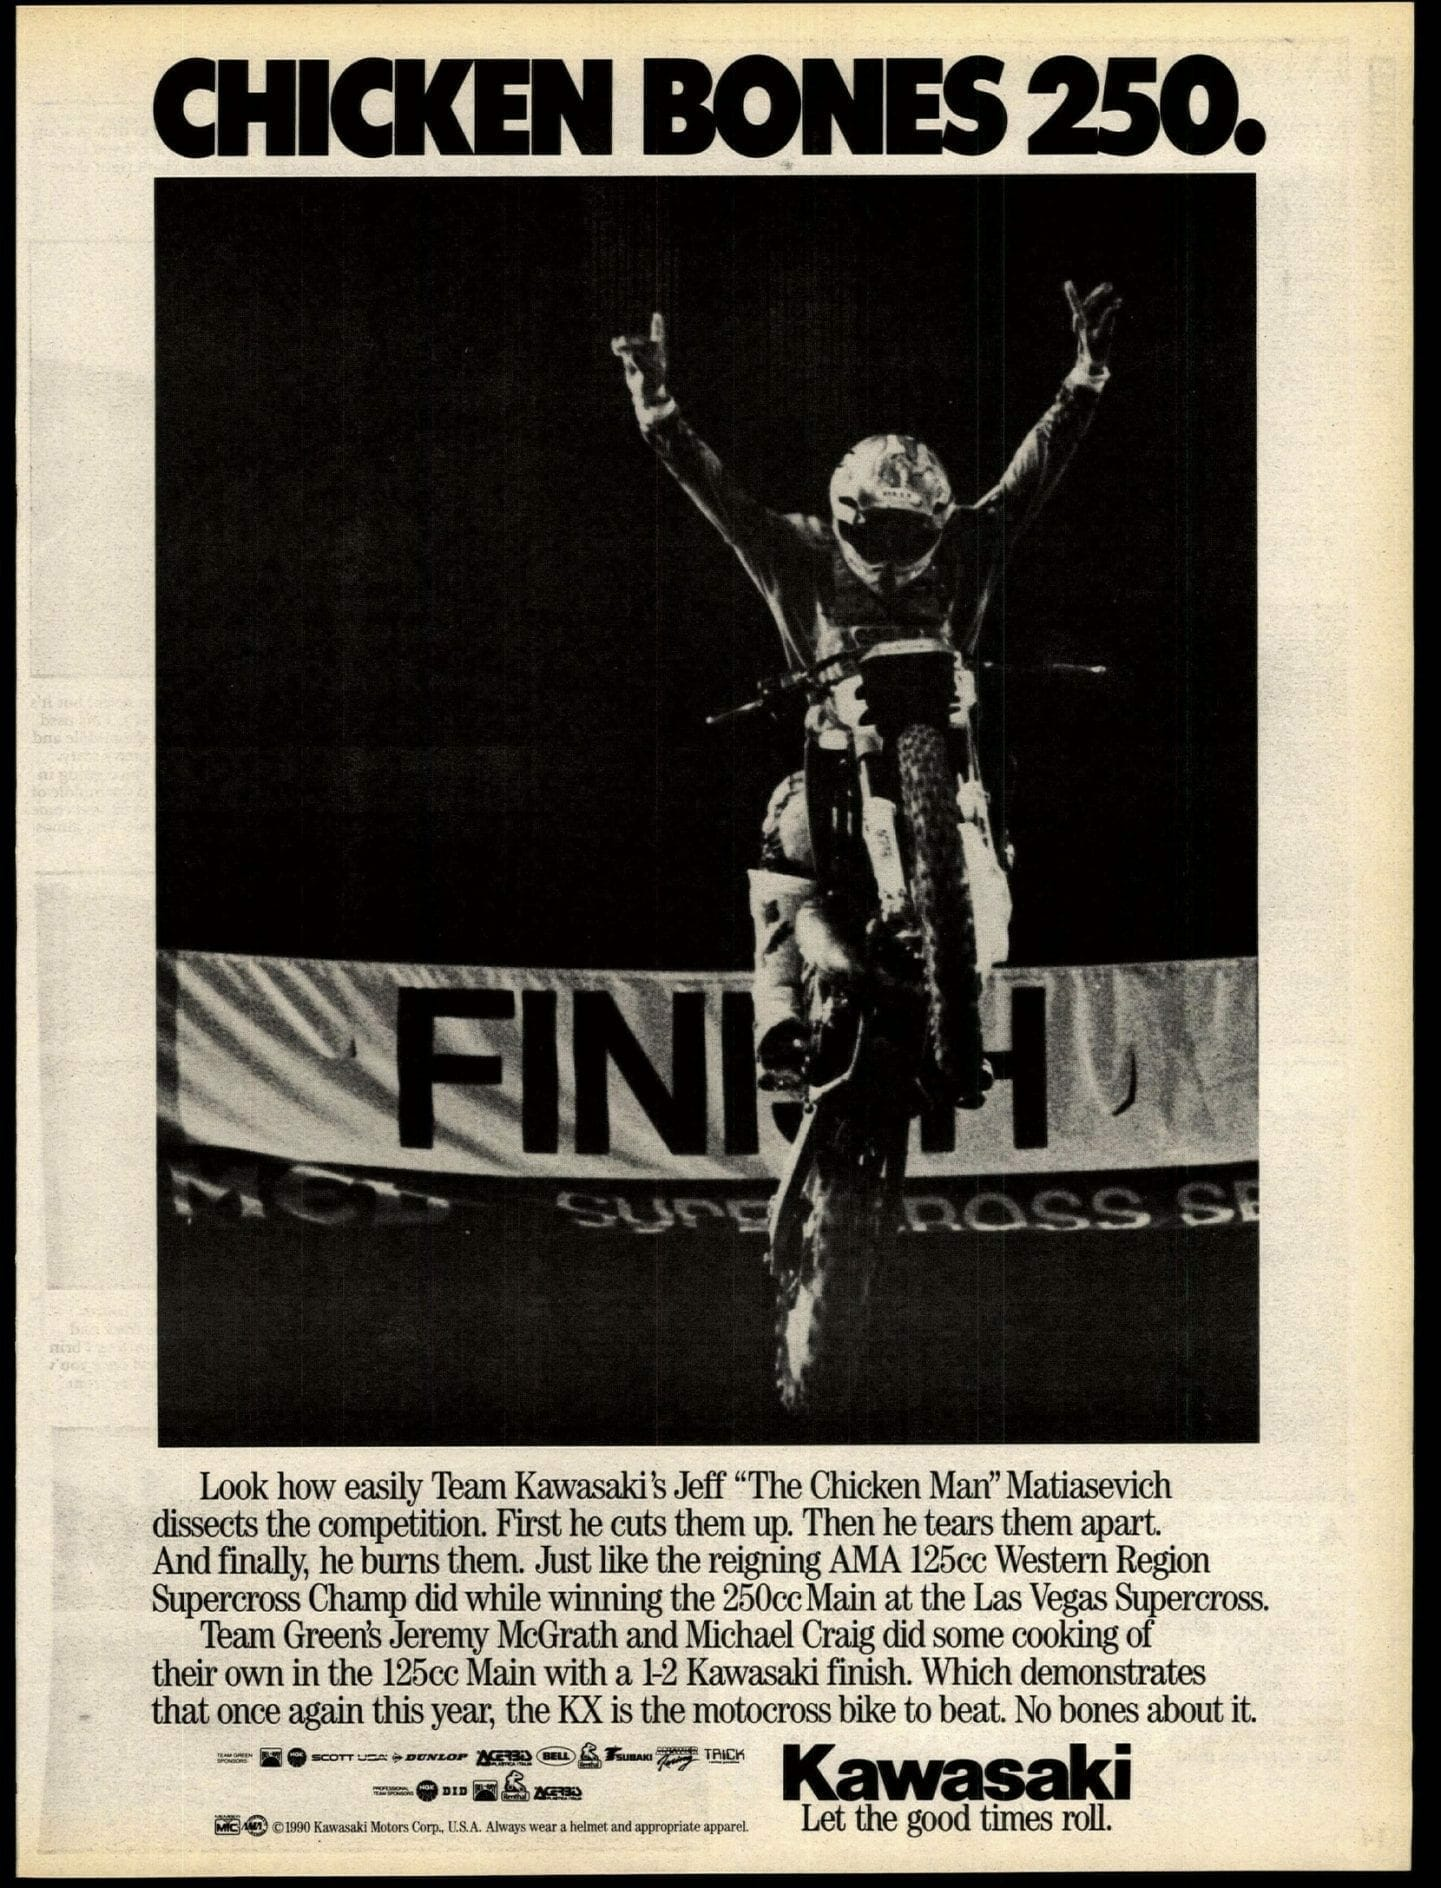 Kawasaki win ad from Jeff Matiasevich's 1990 Las Vegas Supercross victory